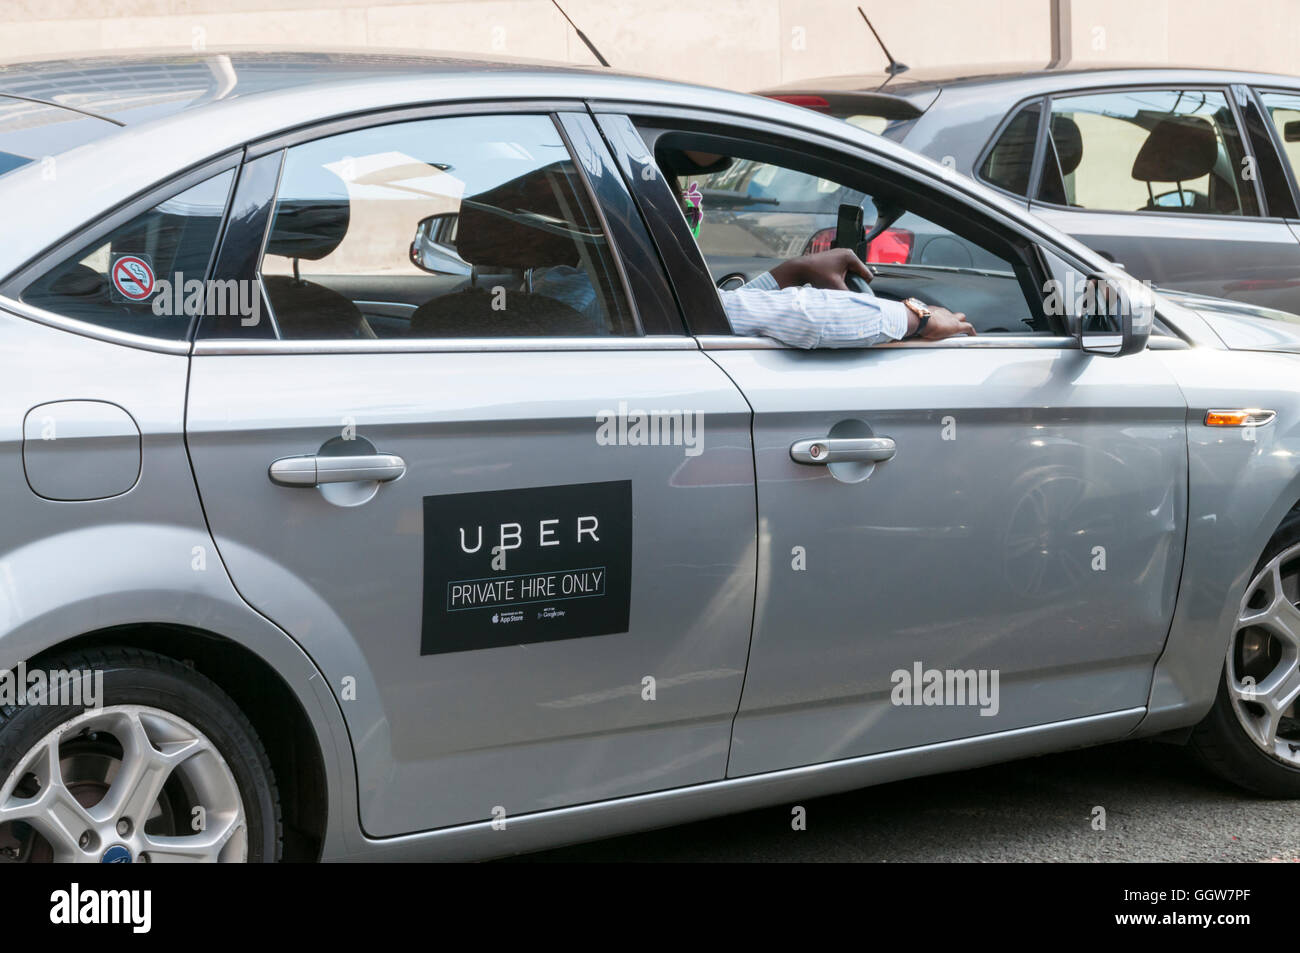 Uber car and driver. Stock Photo